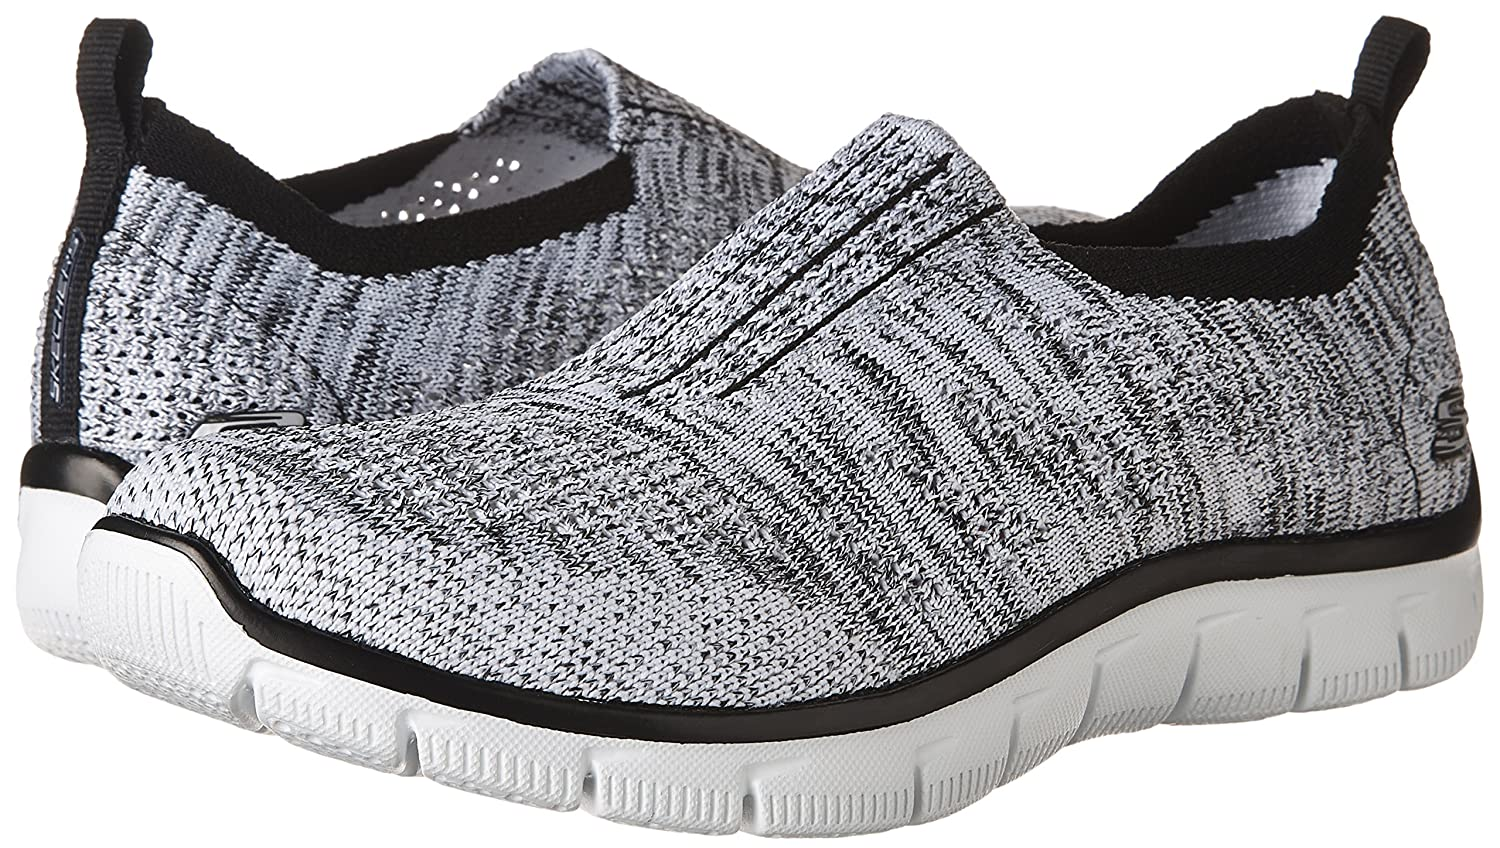 Skechers Sport Women's Empire Inside Look Fashion Sneaker B01LZPRRX6 9 B(M) US|White/Black